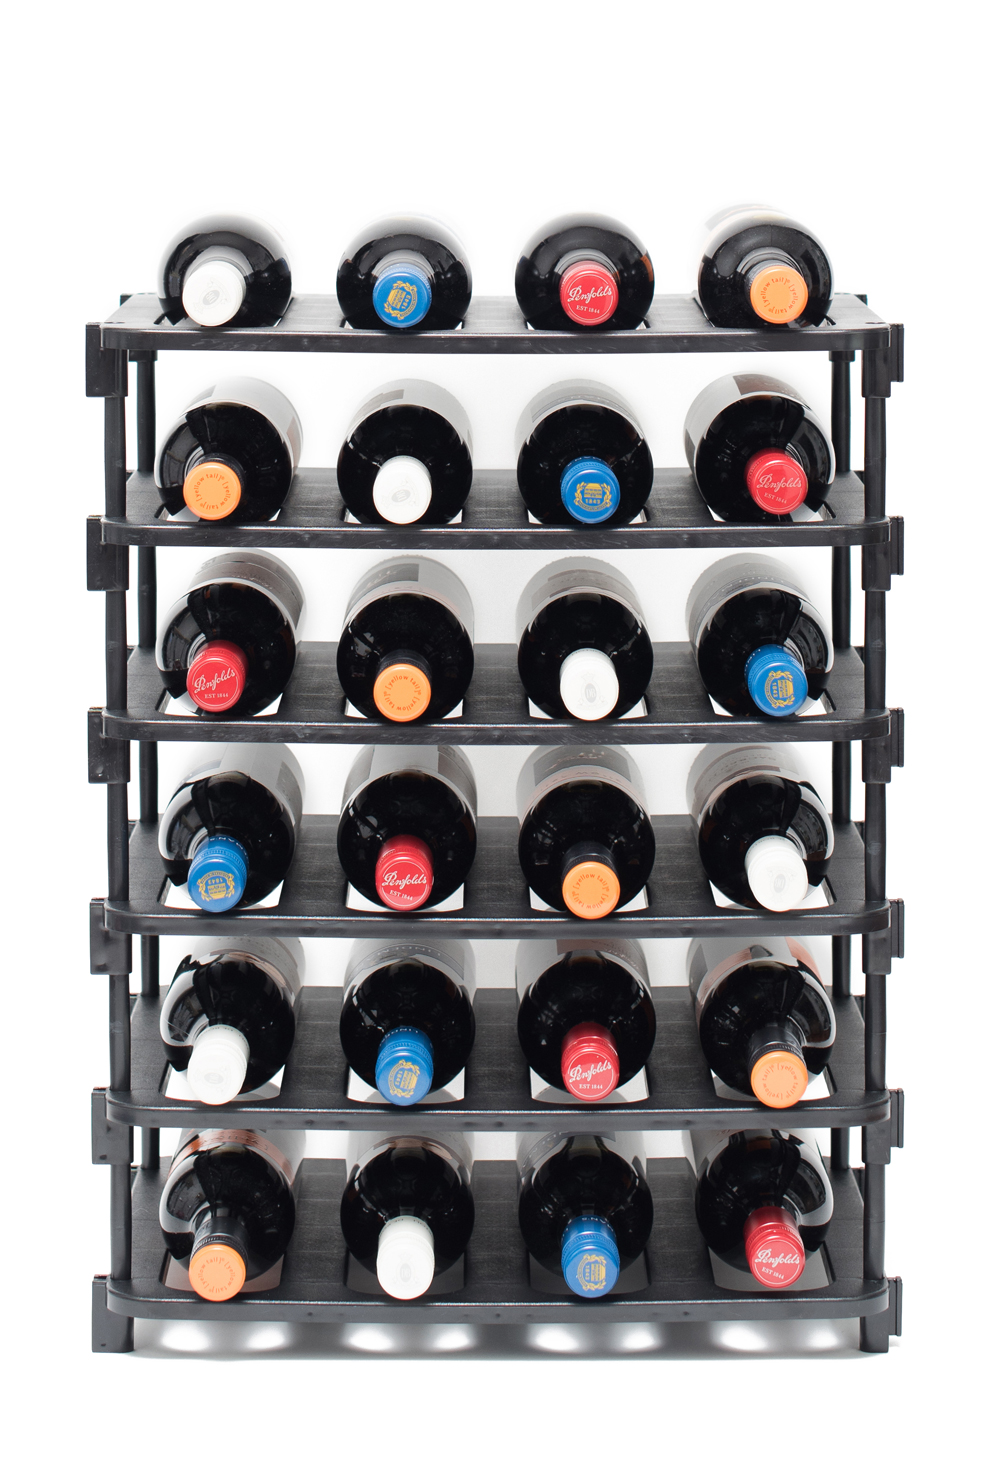 24 Bottle Wine Rack By Vinrac Modular And Affordable